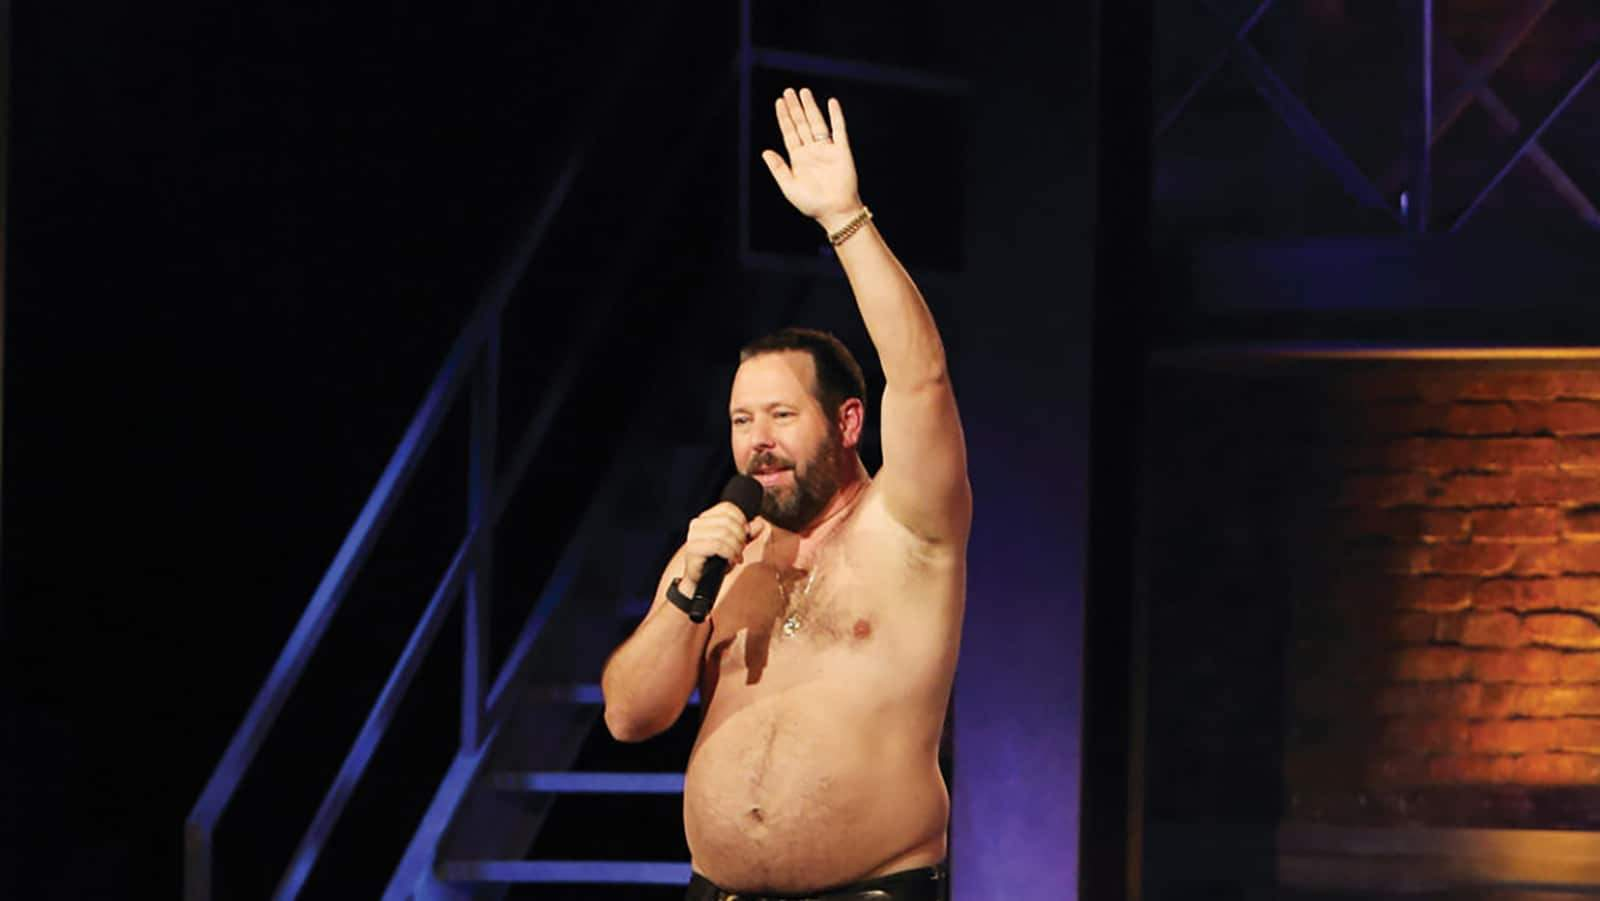 Bert Kreischer (Reduced Capacity, Social Distancing) (Rescheduled from 11/21/2020)